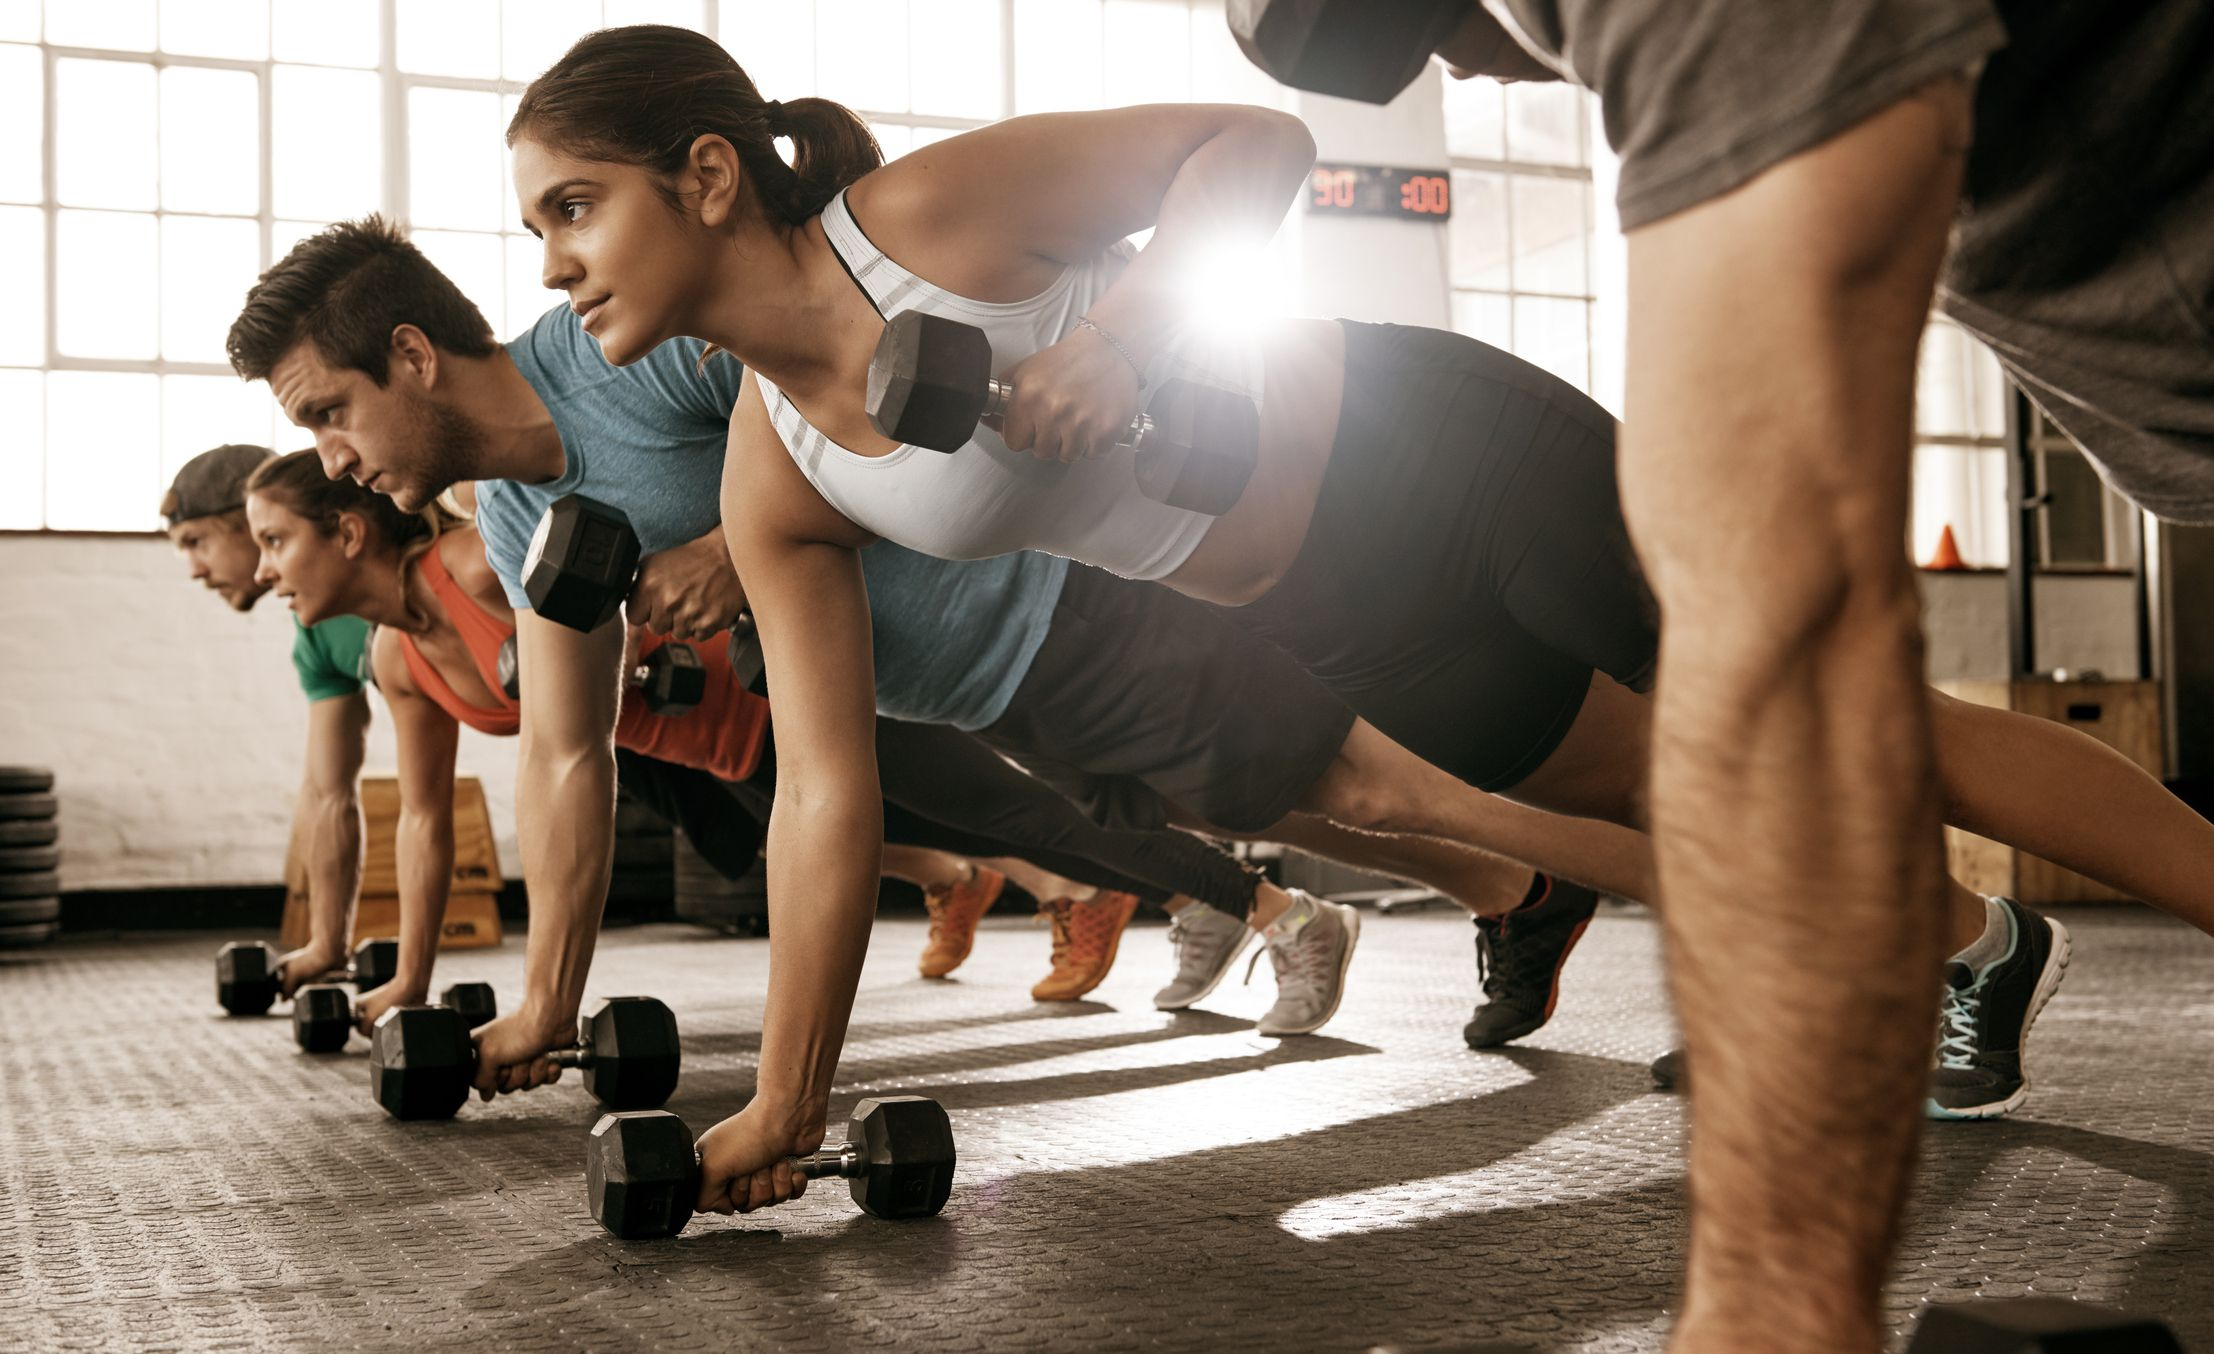 Proper Form Is Very Important For People Doing Strength Training Why